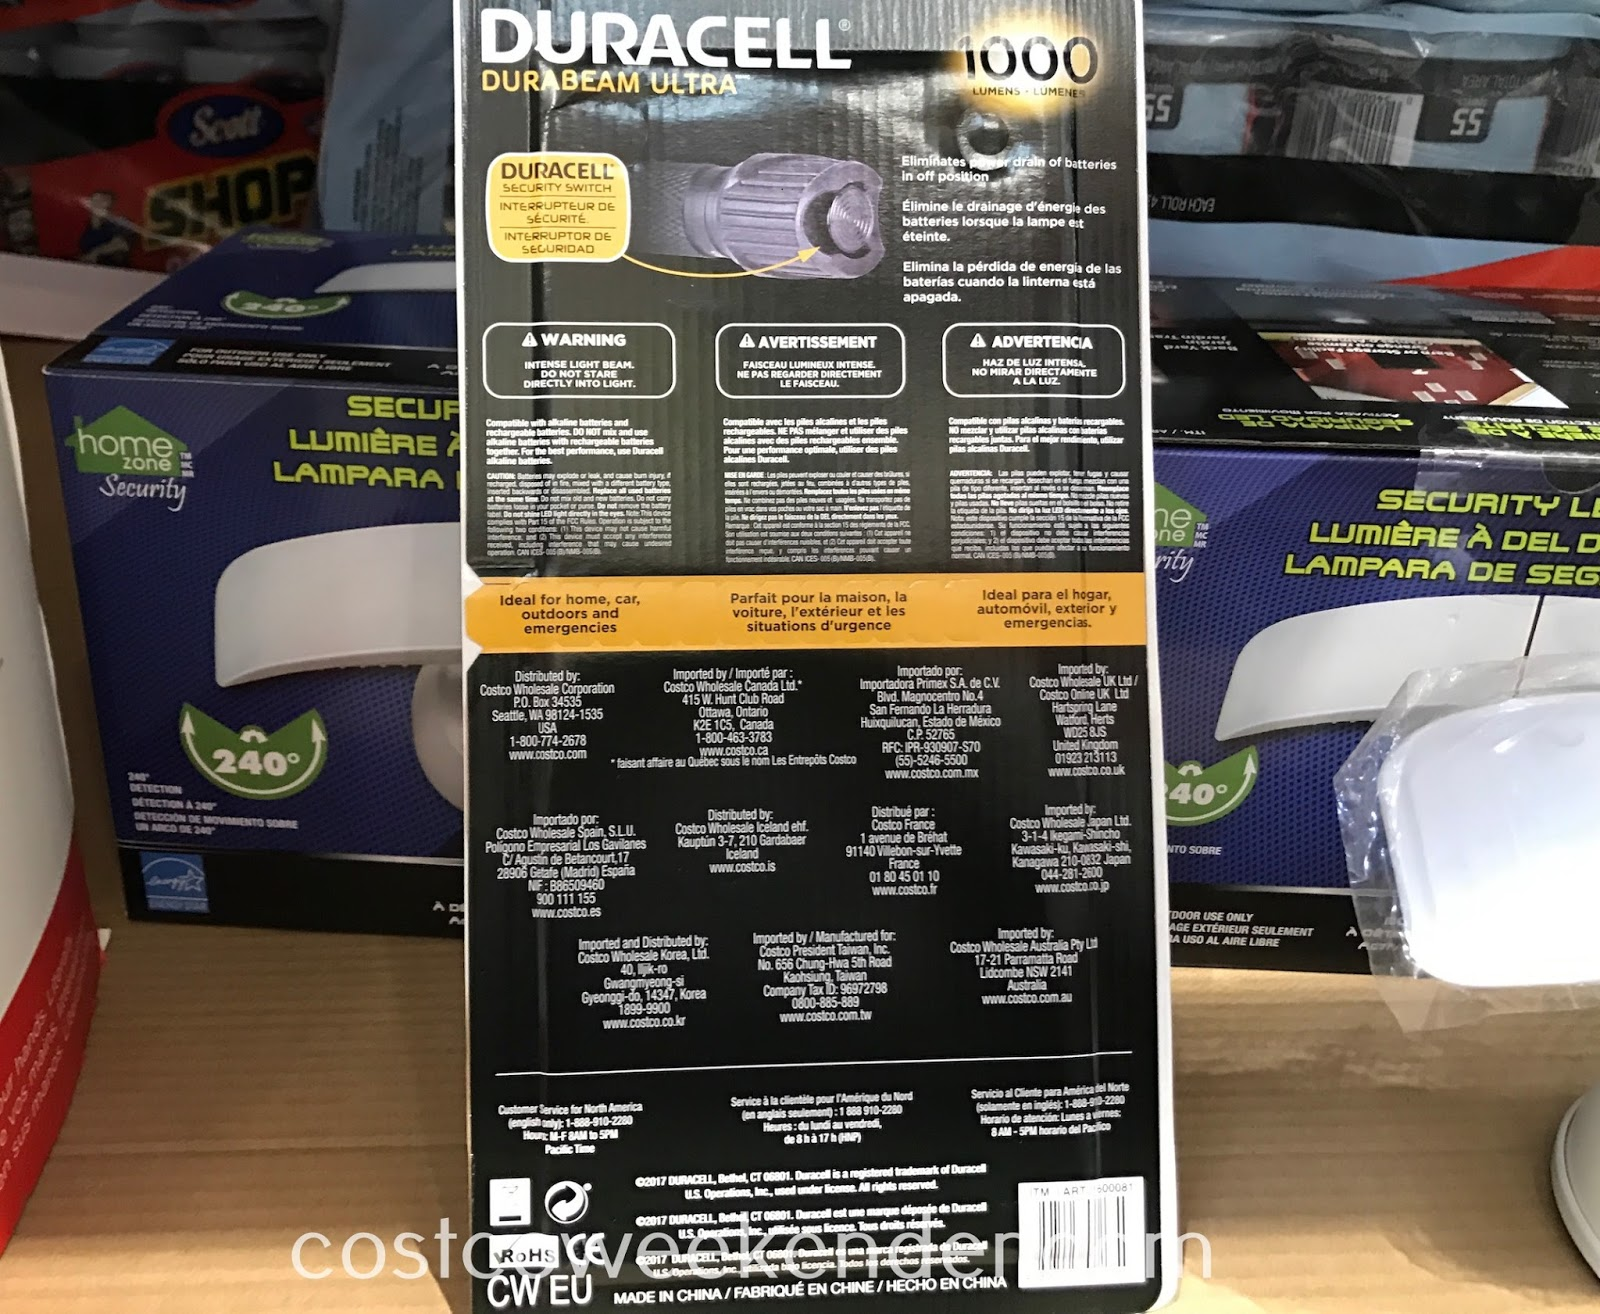 Costco 1600081 - Duracell Durabeam Ultra LED Flashlight: great for your car, home, and emergencies